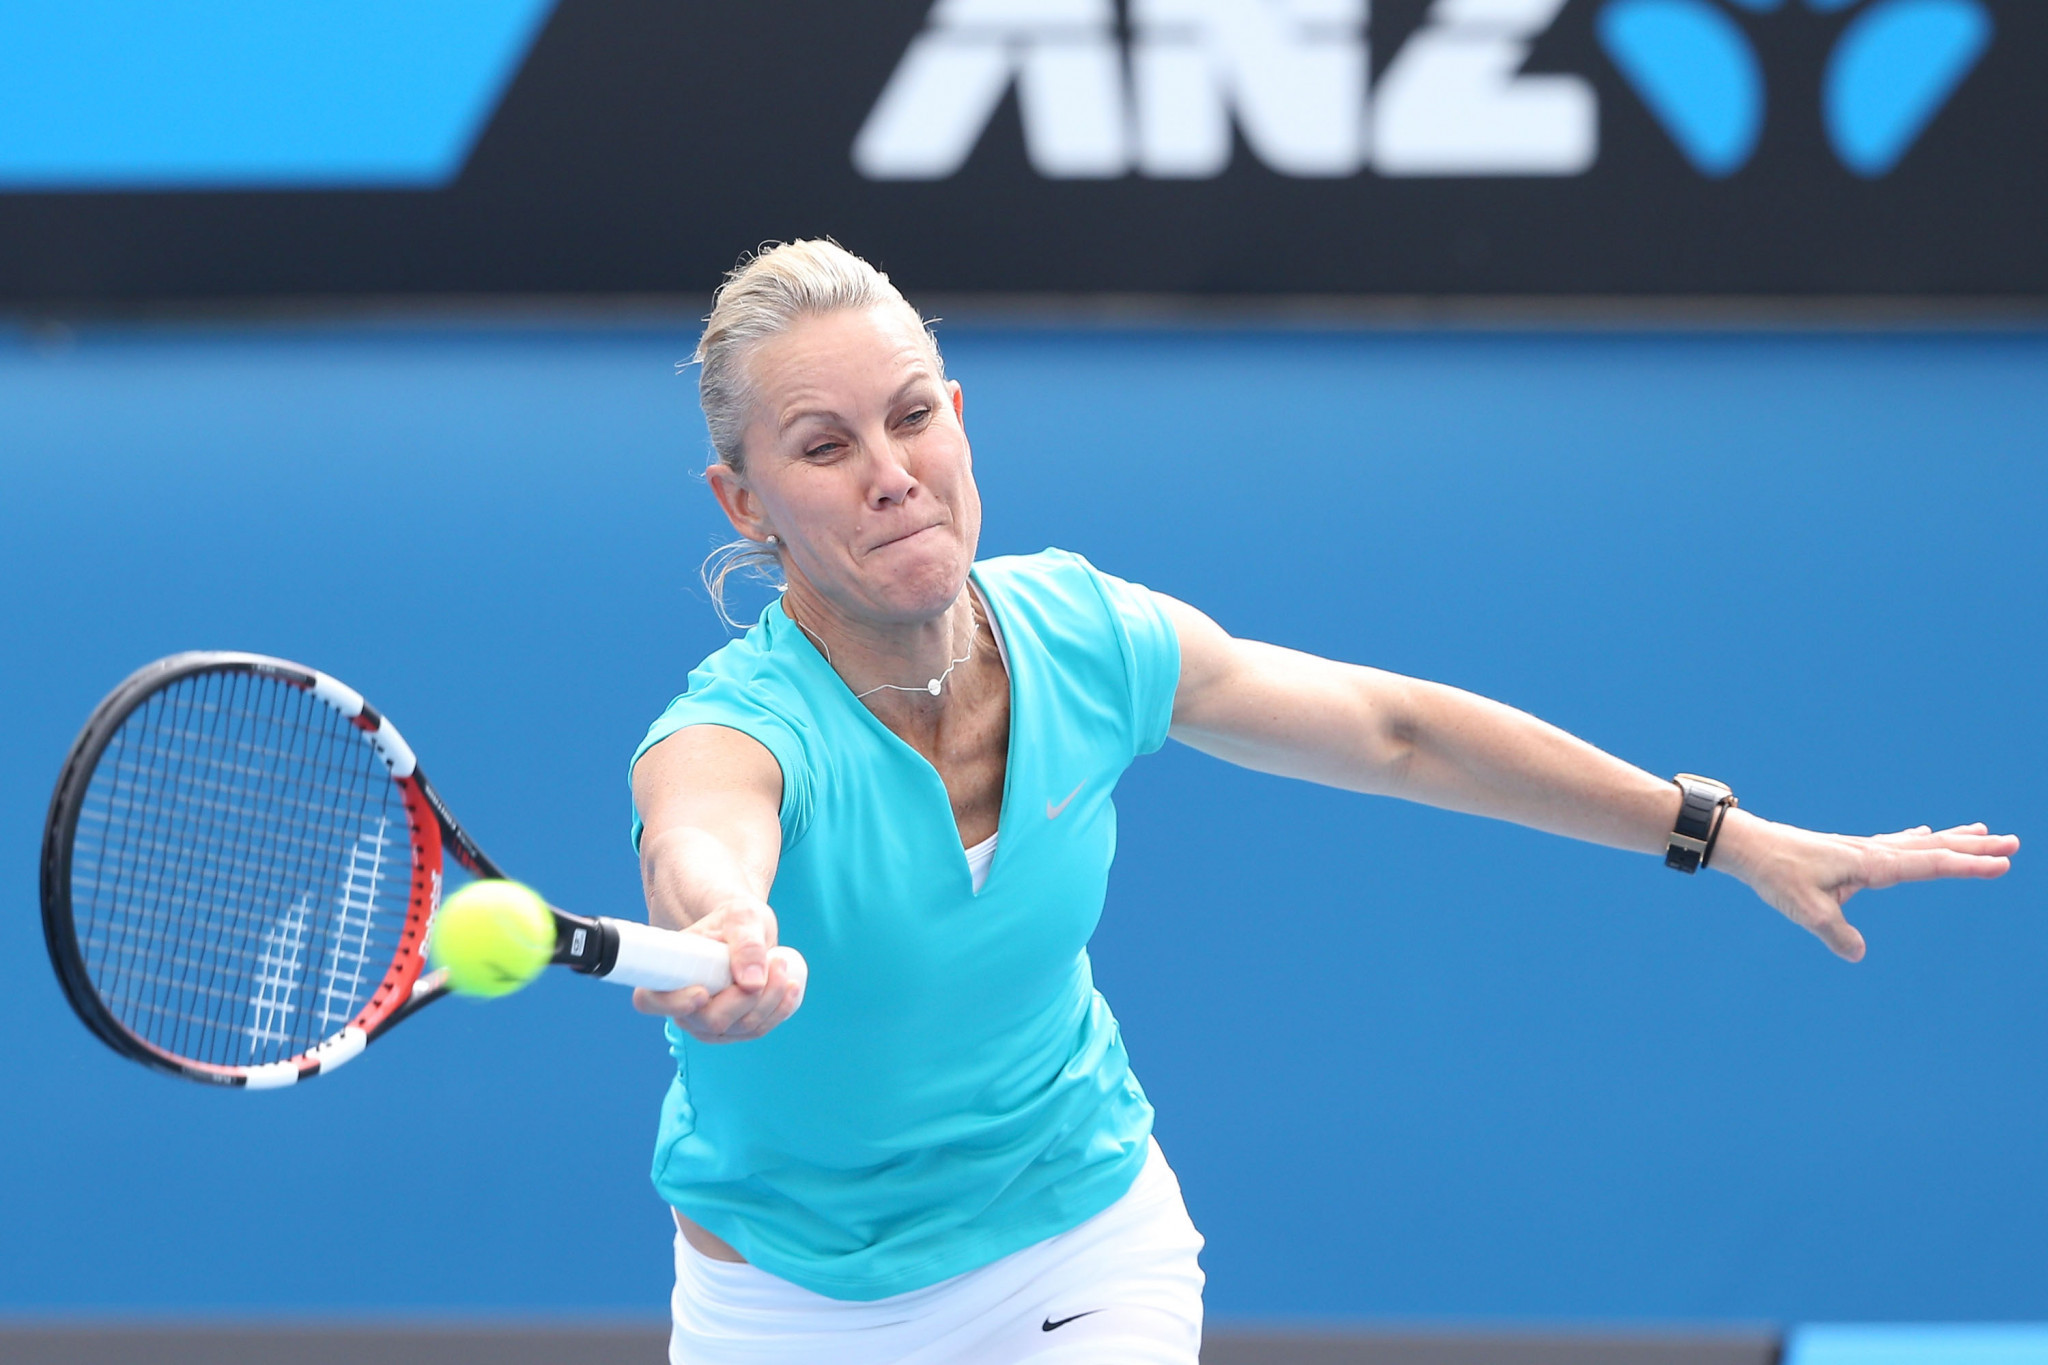 Stubbs and Sa named as ITF player relations consultants